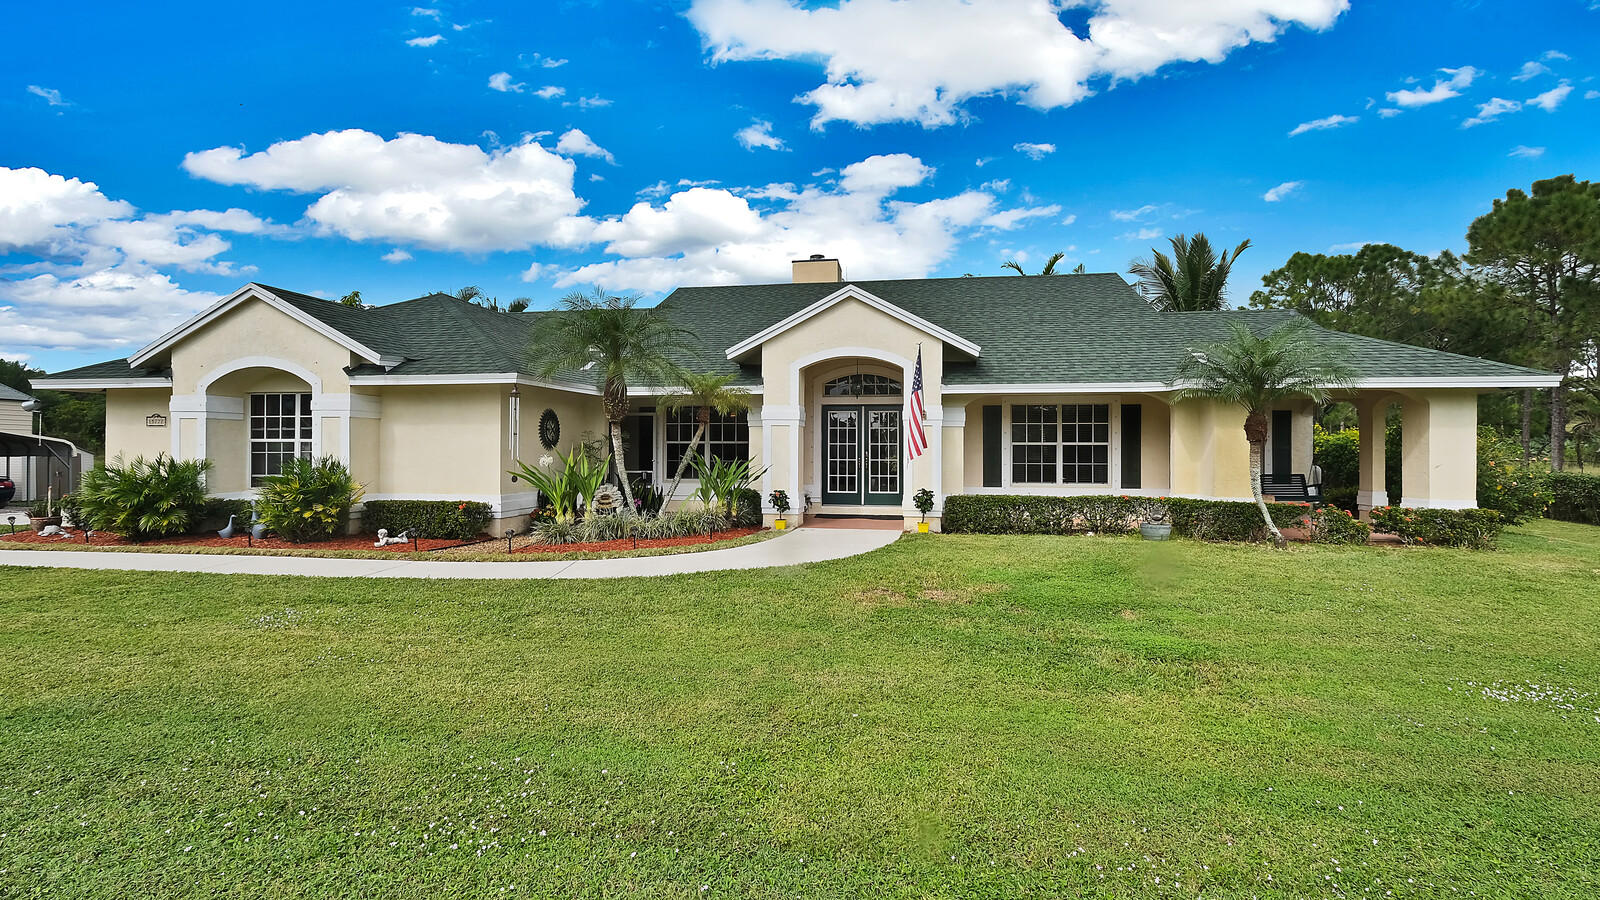 Home for sale in Acreage/Loxahatchee The Acreage Florida